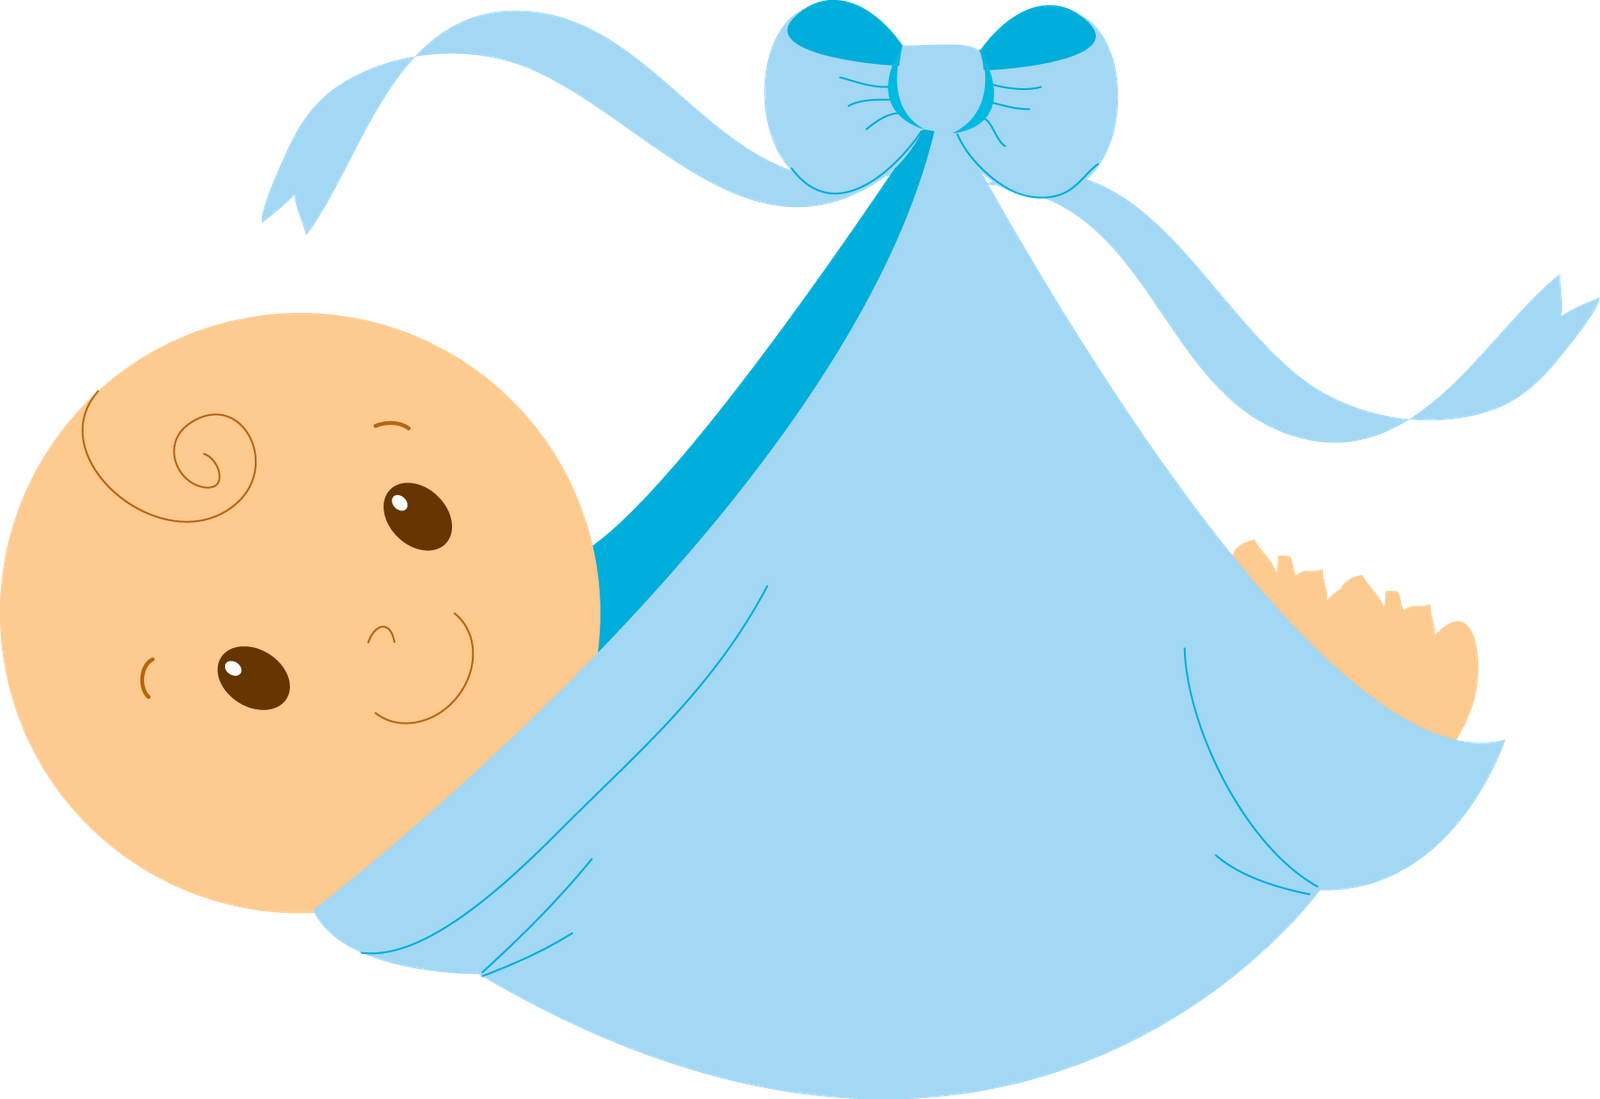 Infant clipart infancy stage. Baby shower clip art